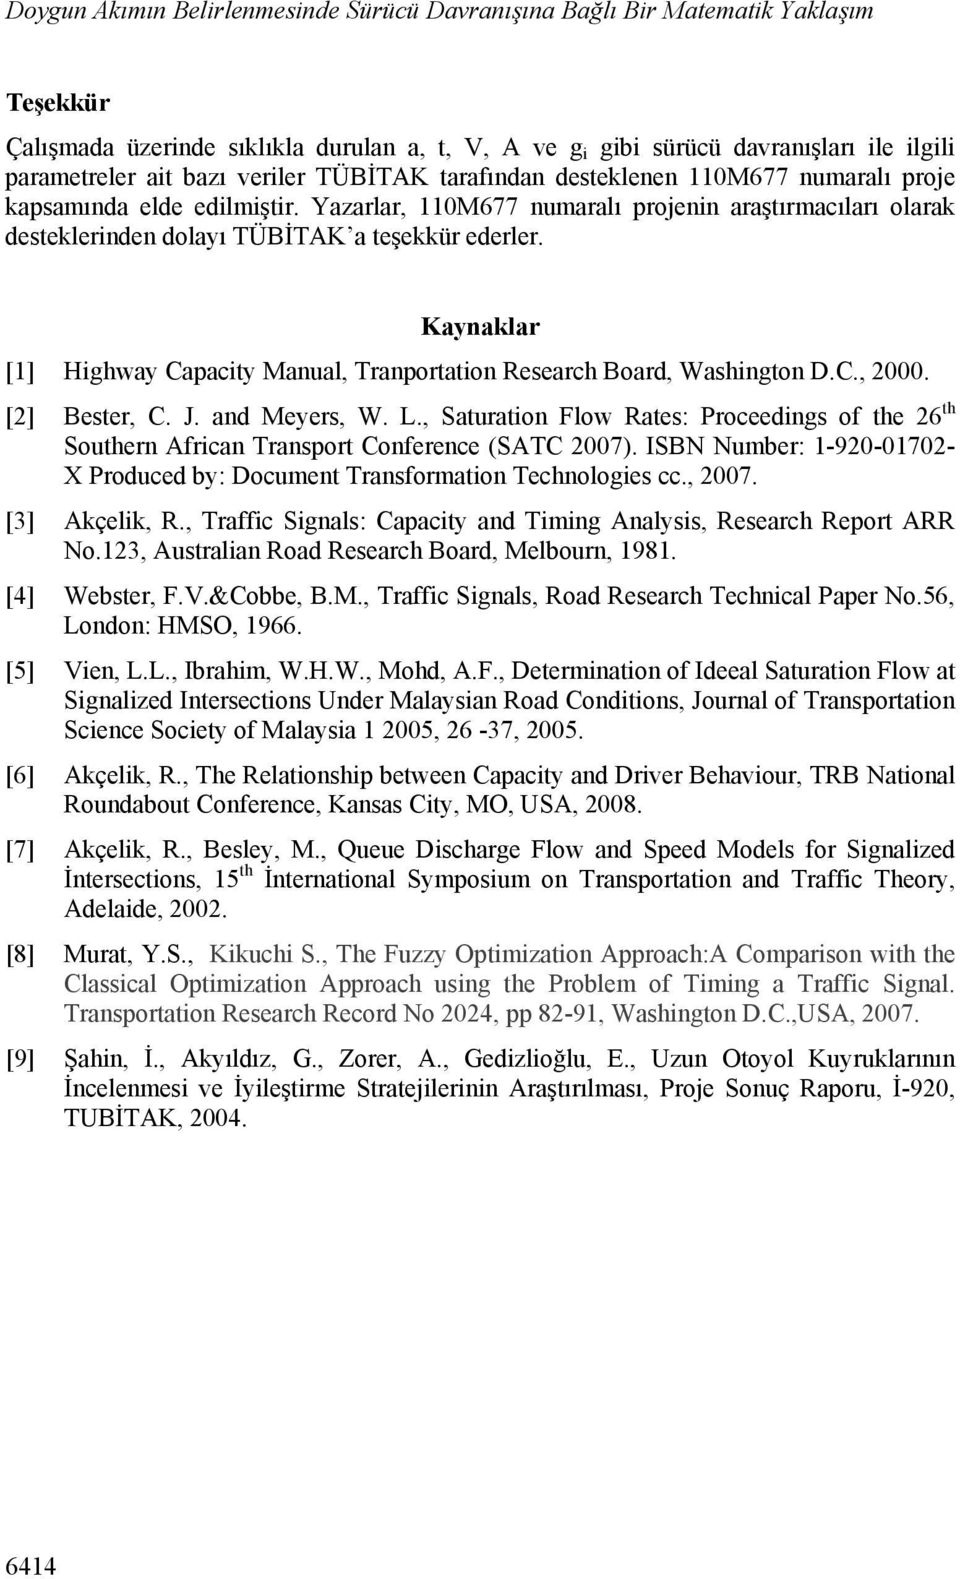 Kaynaklar [1] Highway Capacity Manual, Tranportation Research Board, Washington D.C., 2000. [2] Bester, C. J. and Meyers, W. L.